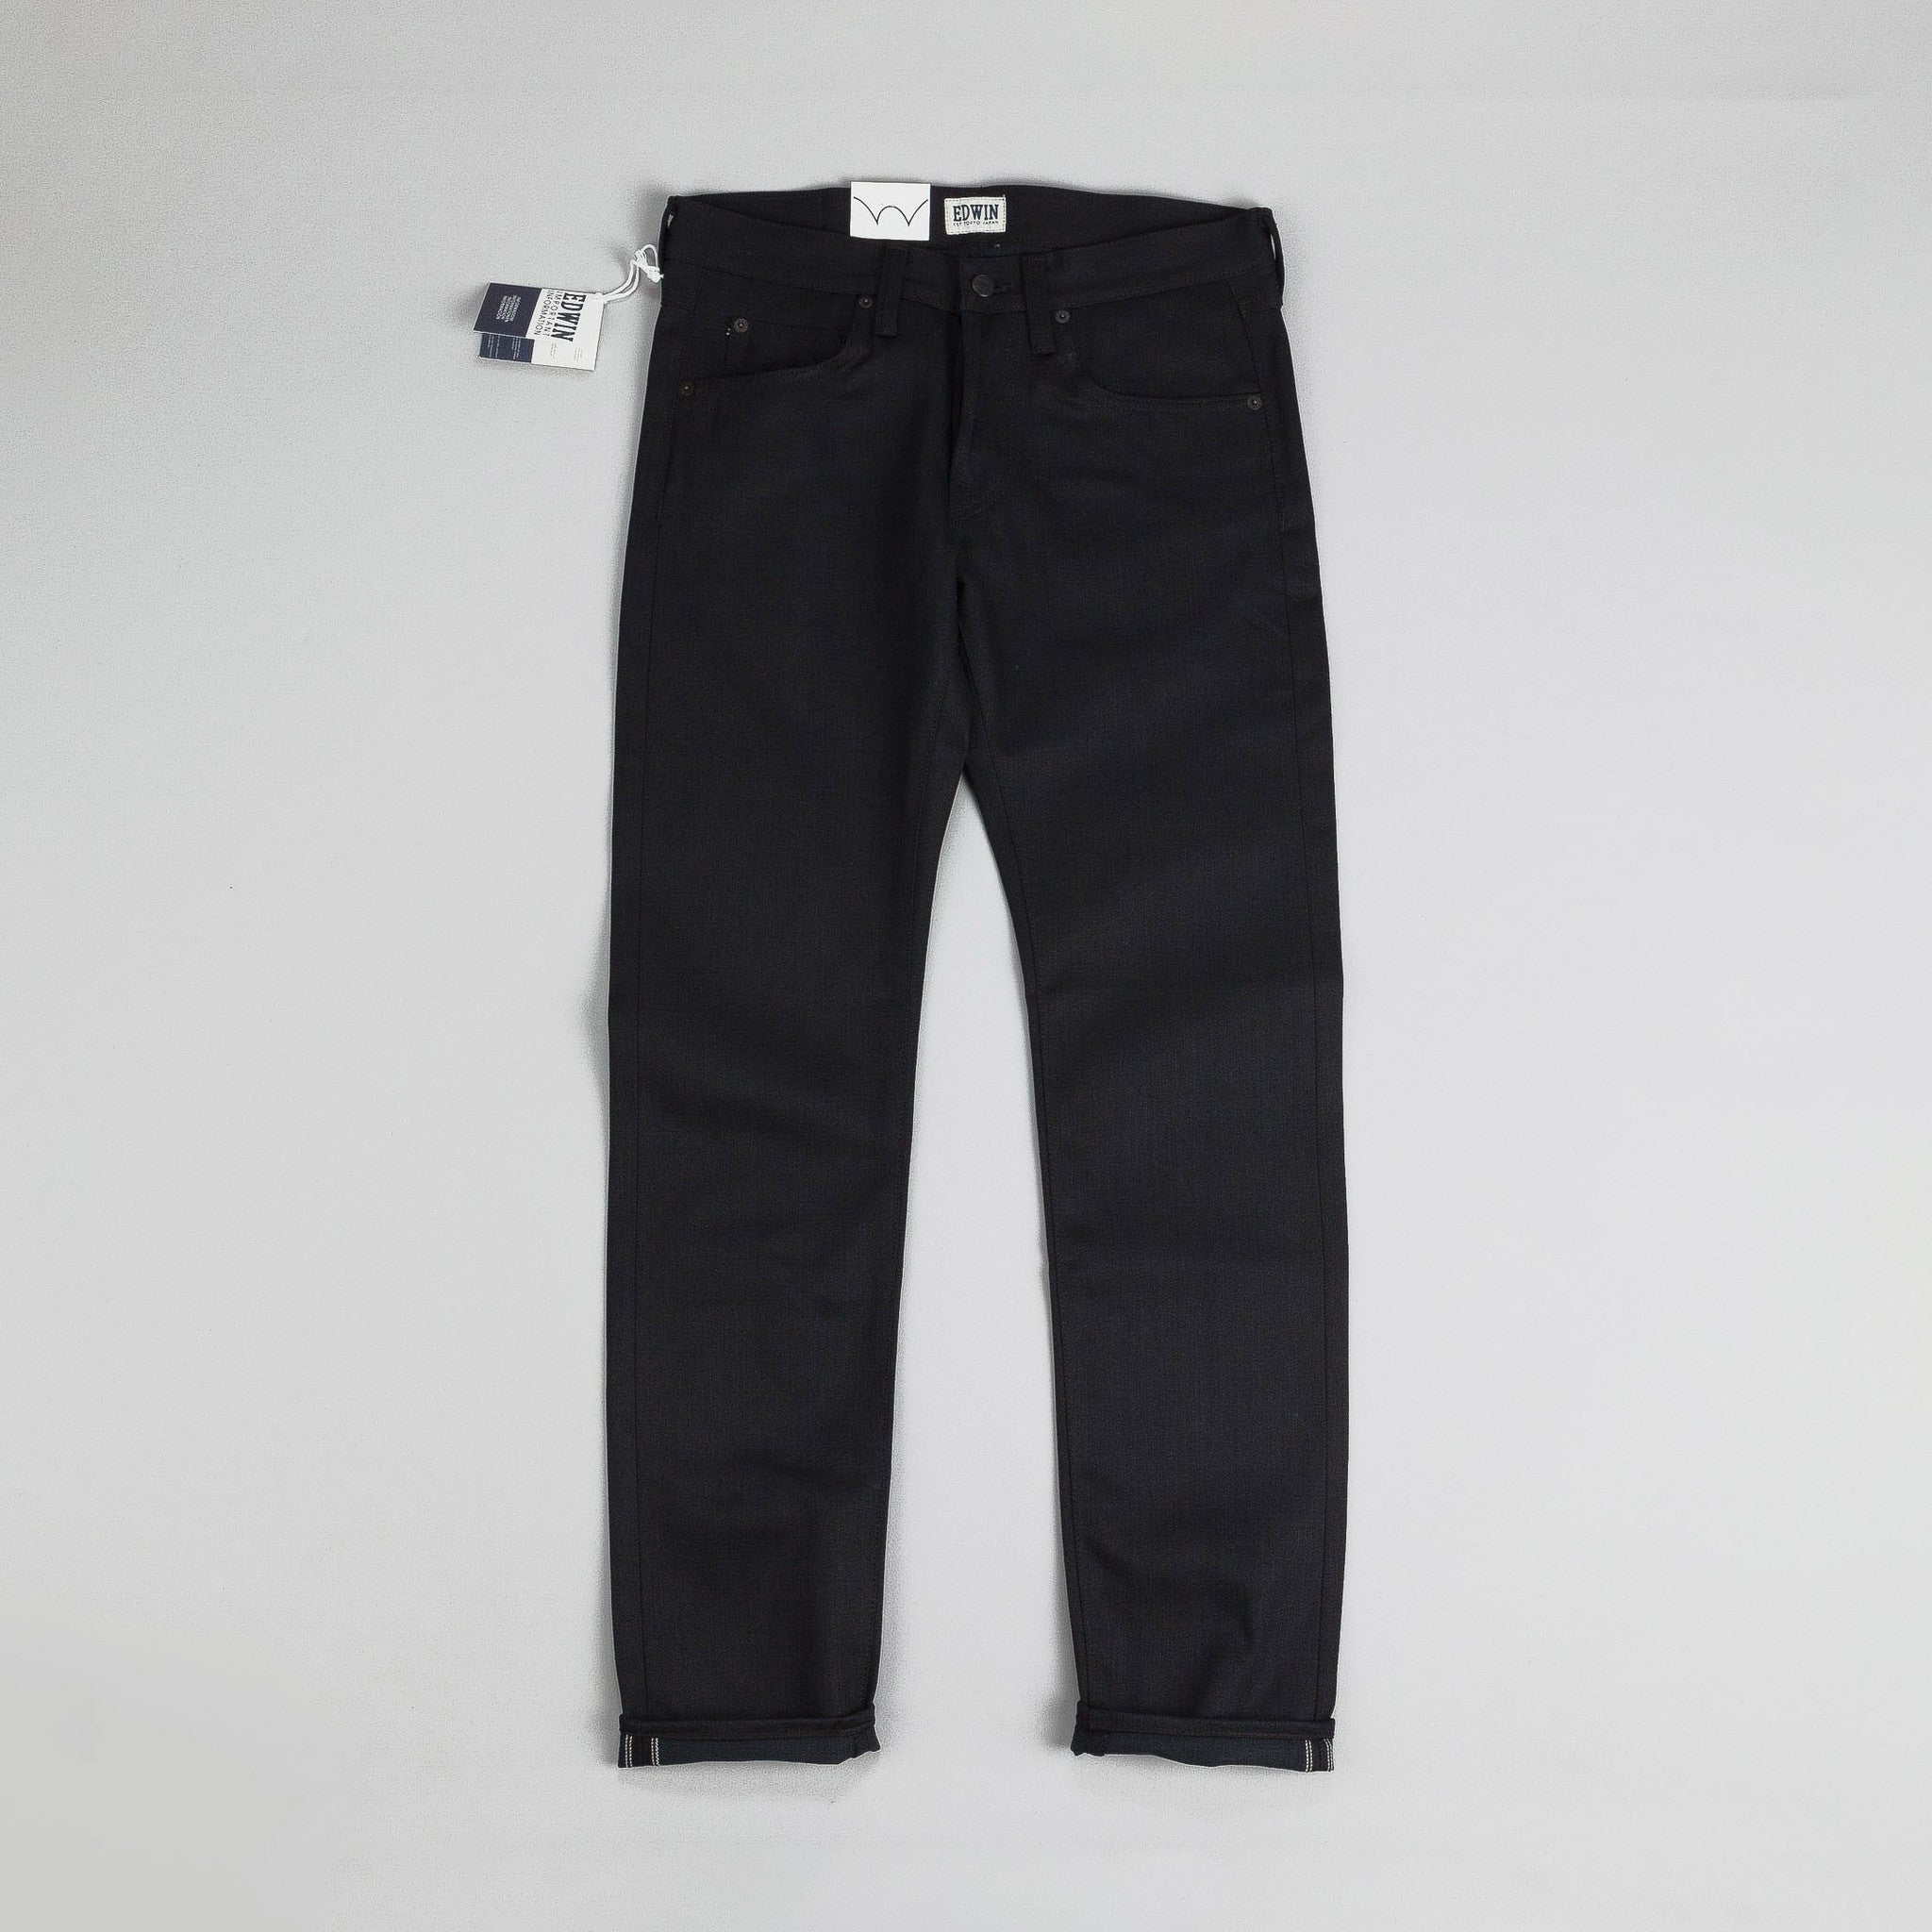 Edwin ED-55 Relaxed Tapered White Listed Jeans Black Unwashed